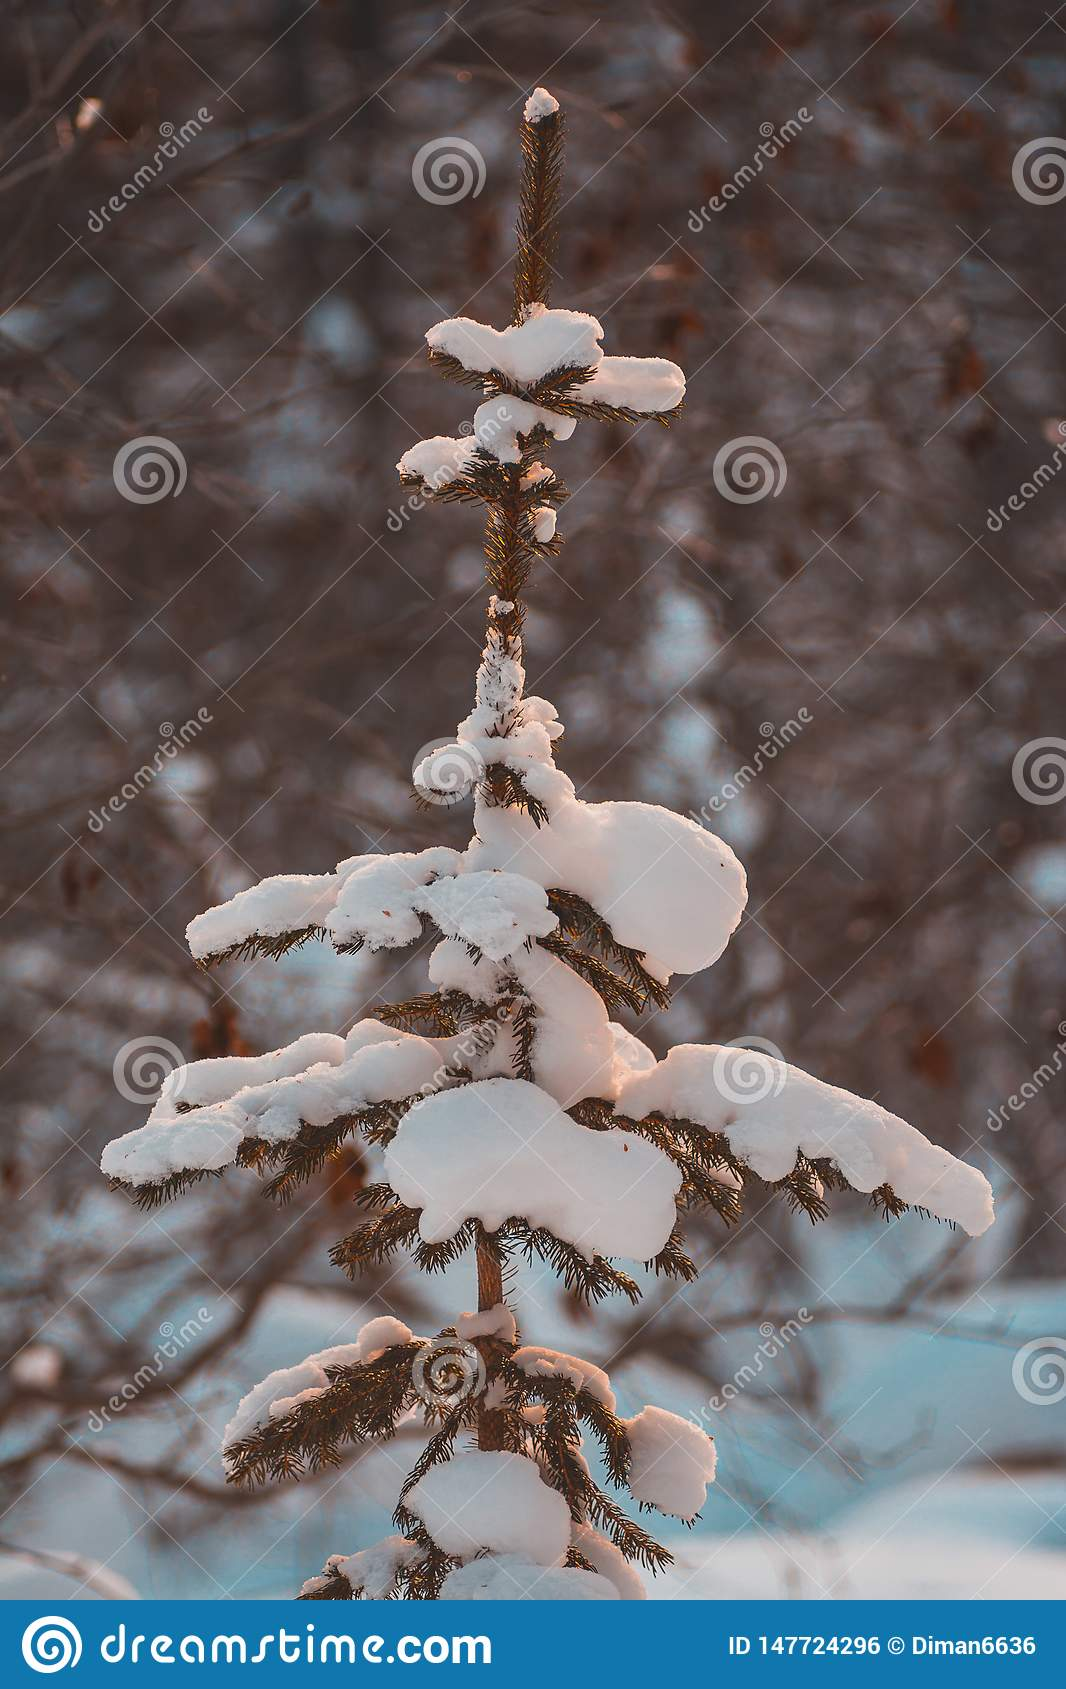 Christmas tree on the nature in the snow, a snowy tree in the forest